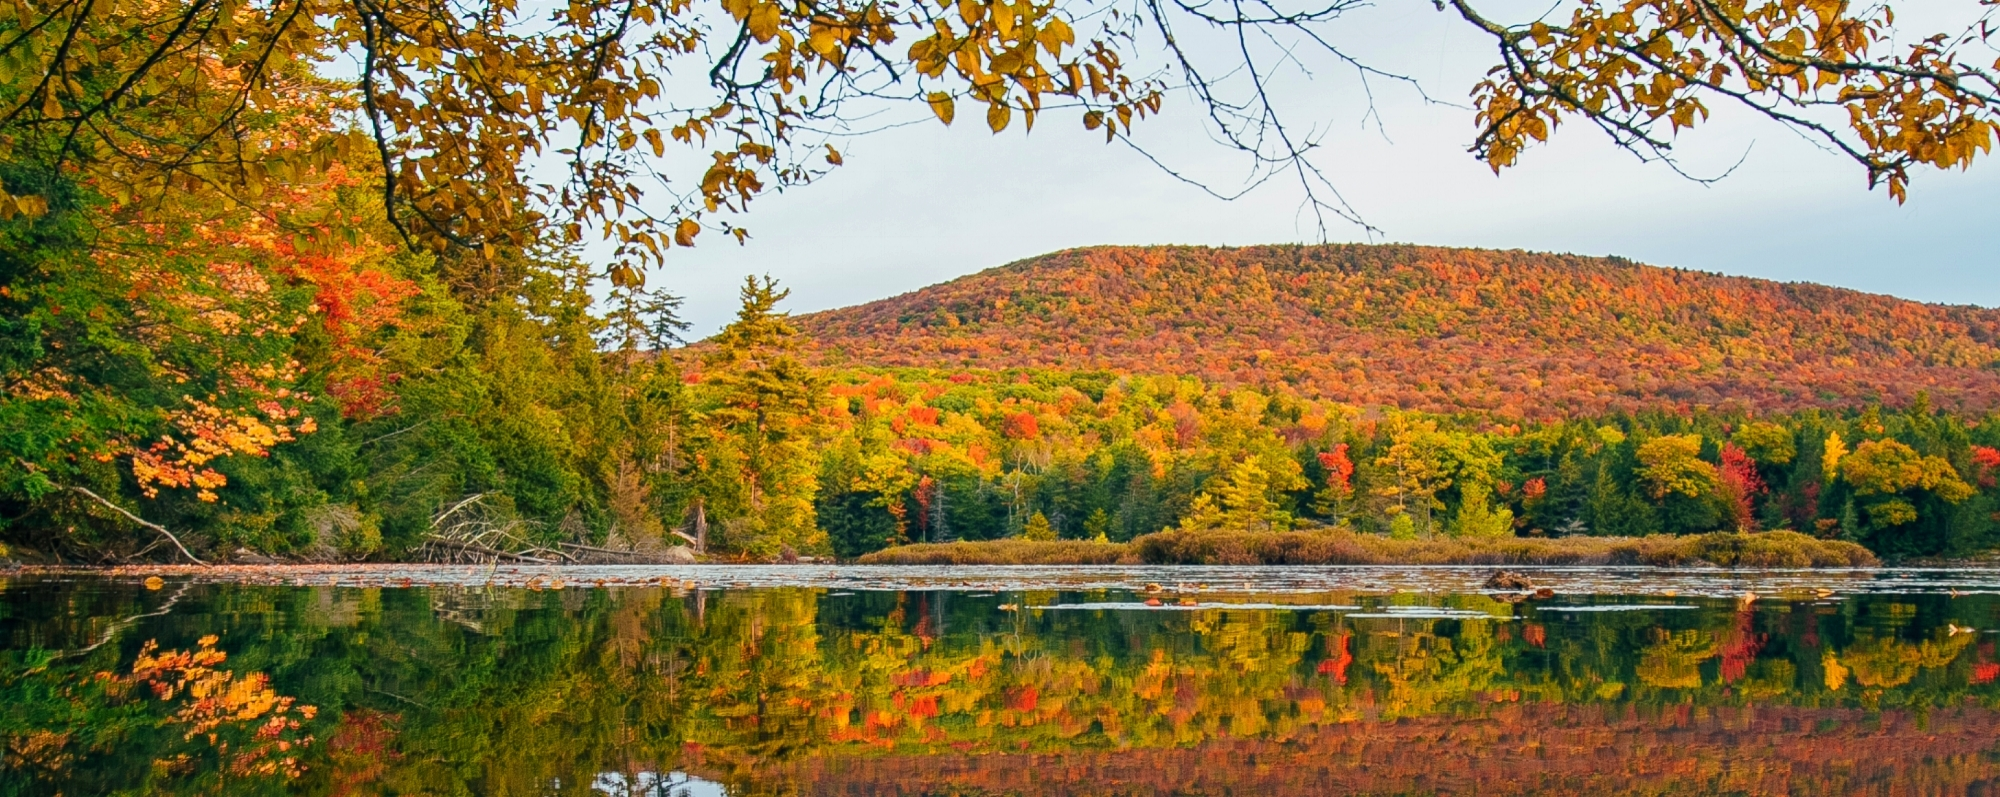 Catskills NY | Find Attractions, Events & Information